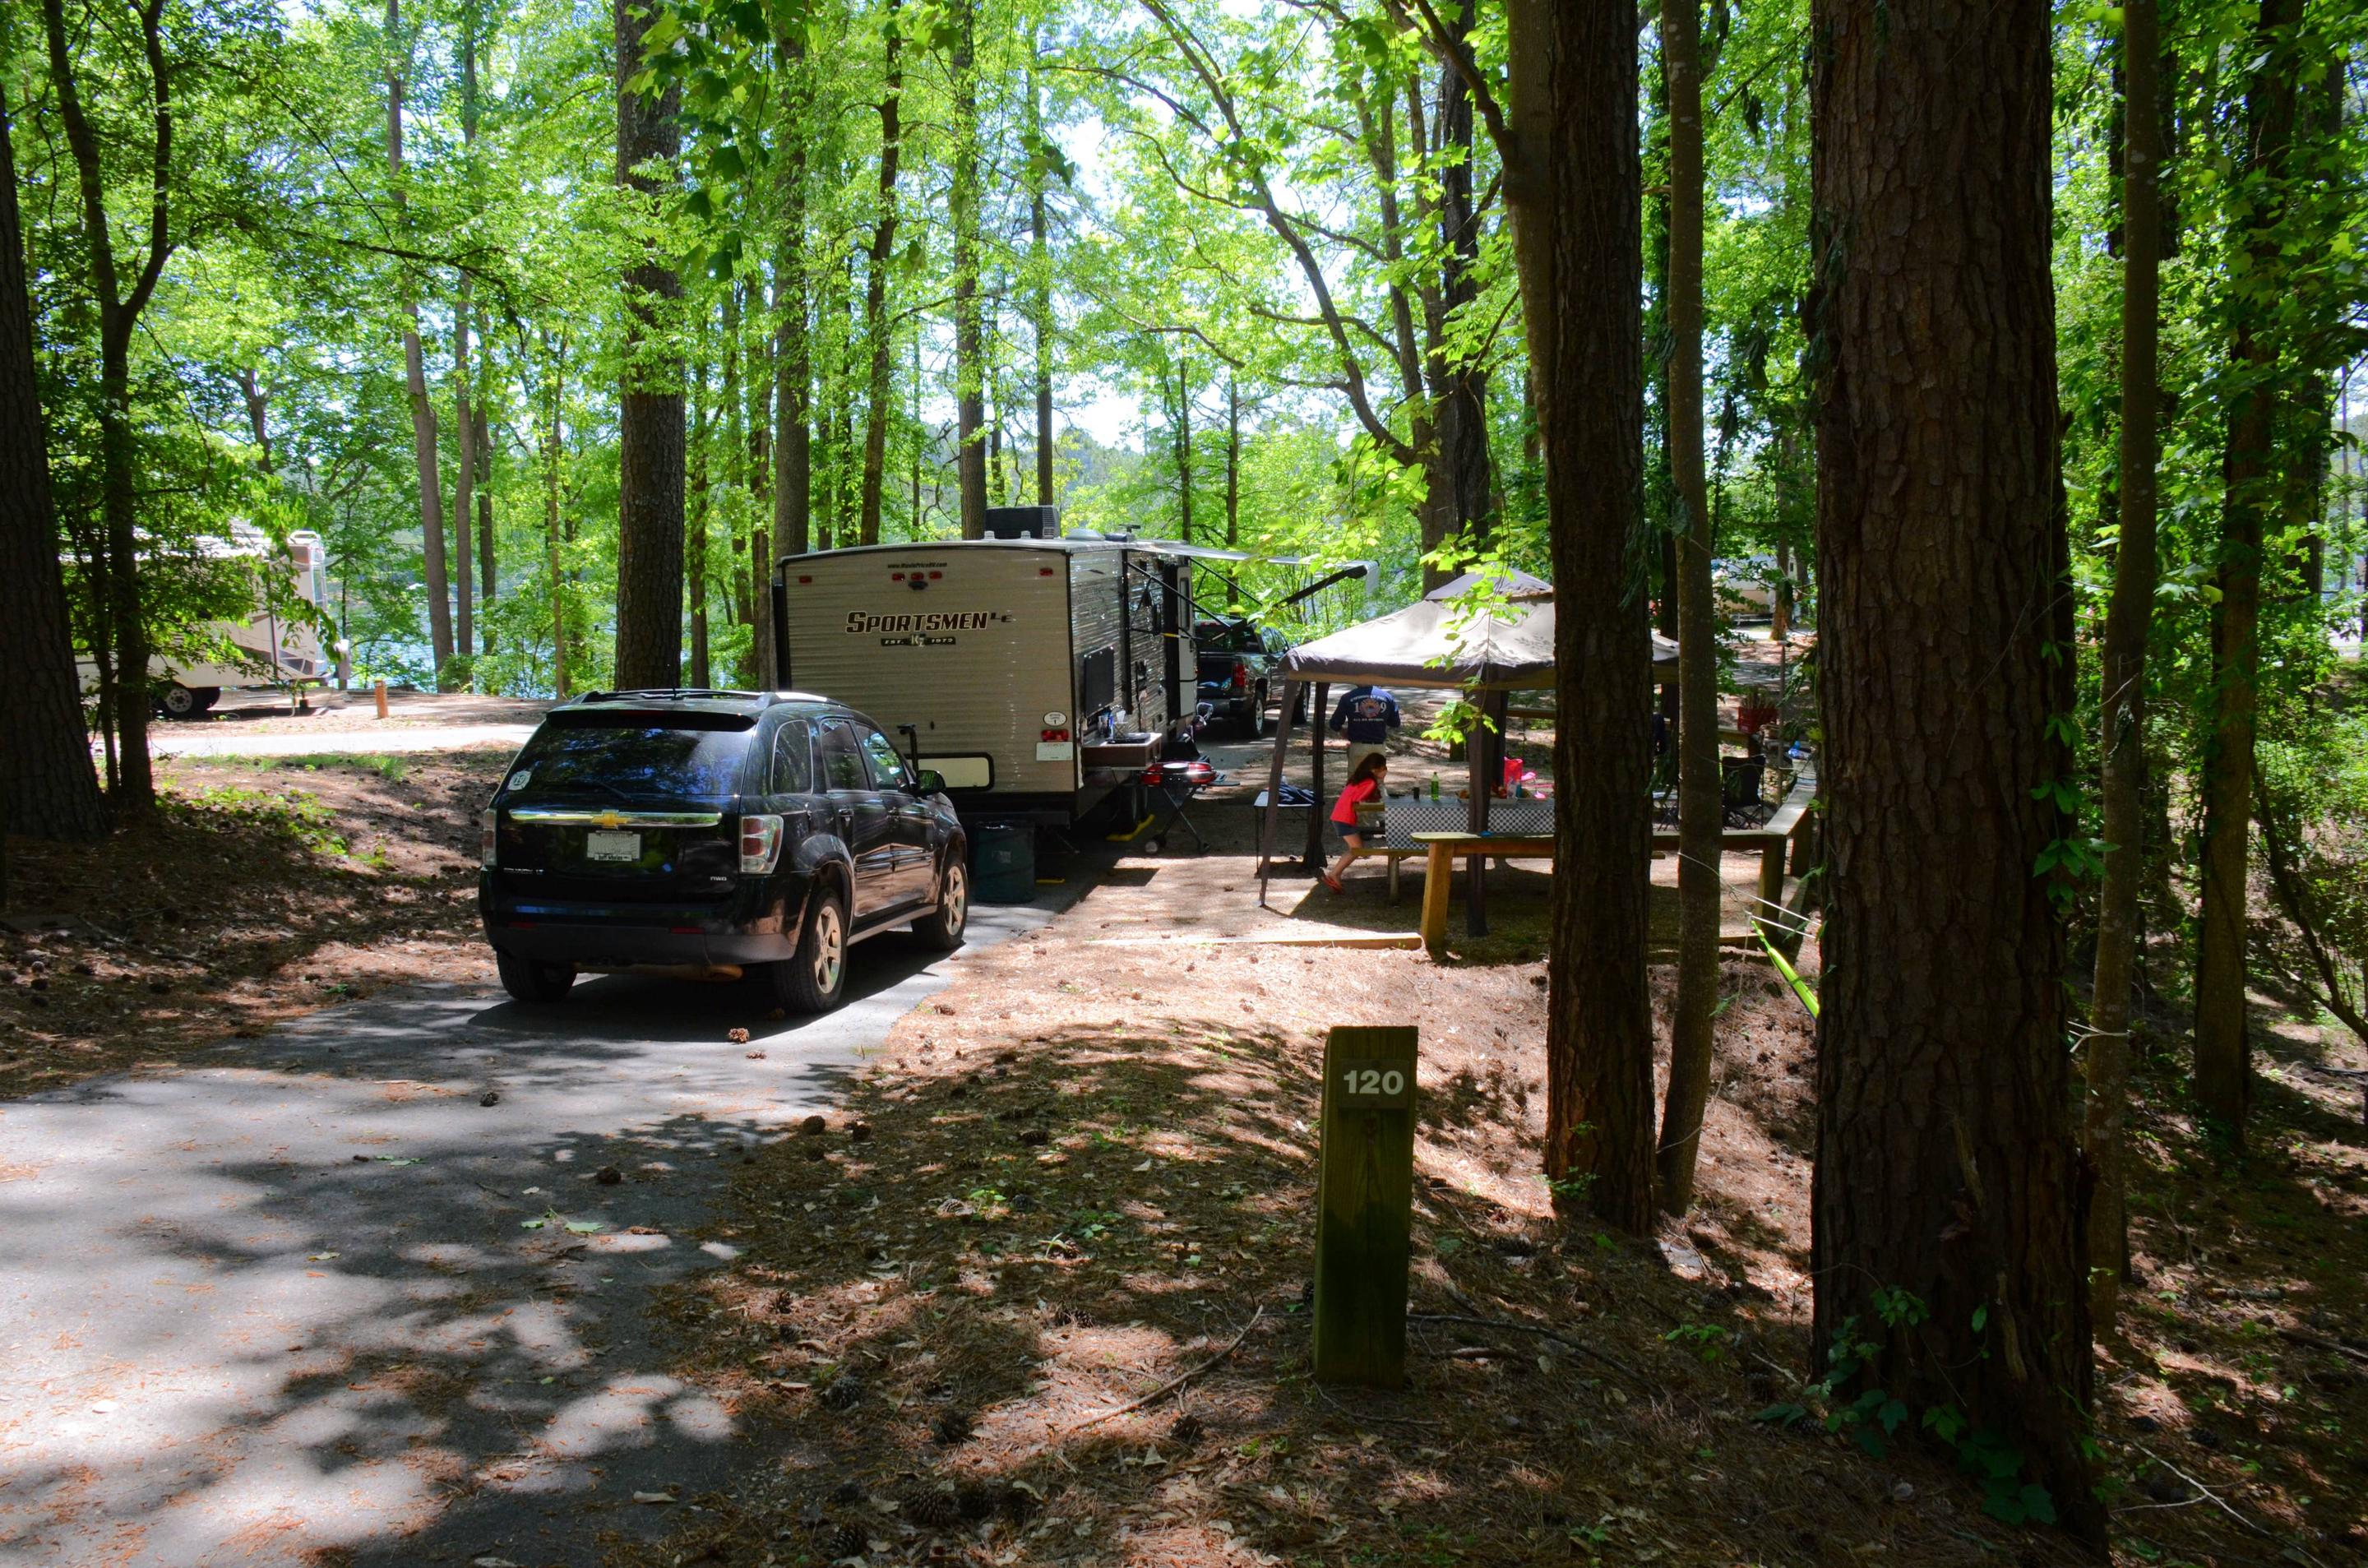 Pull-thru entrance, driveway slope, awning clearance.McKinney Campground, campsite 120.